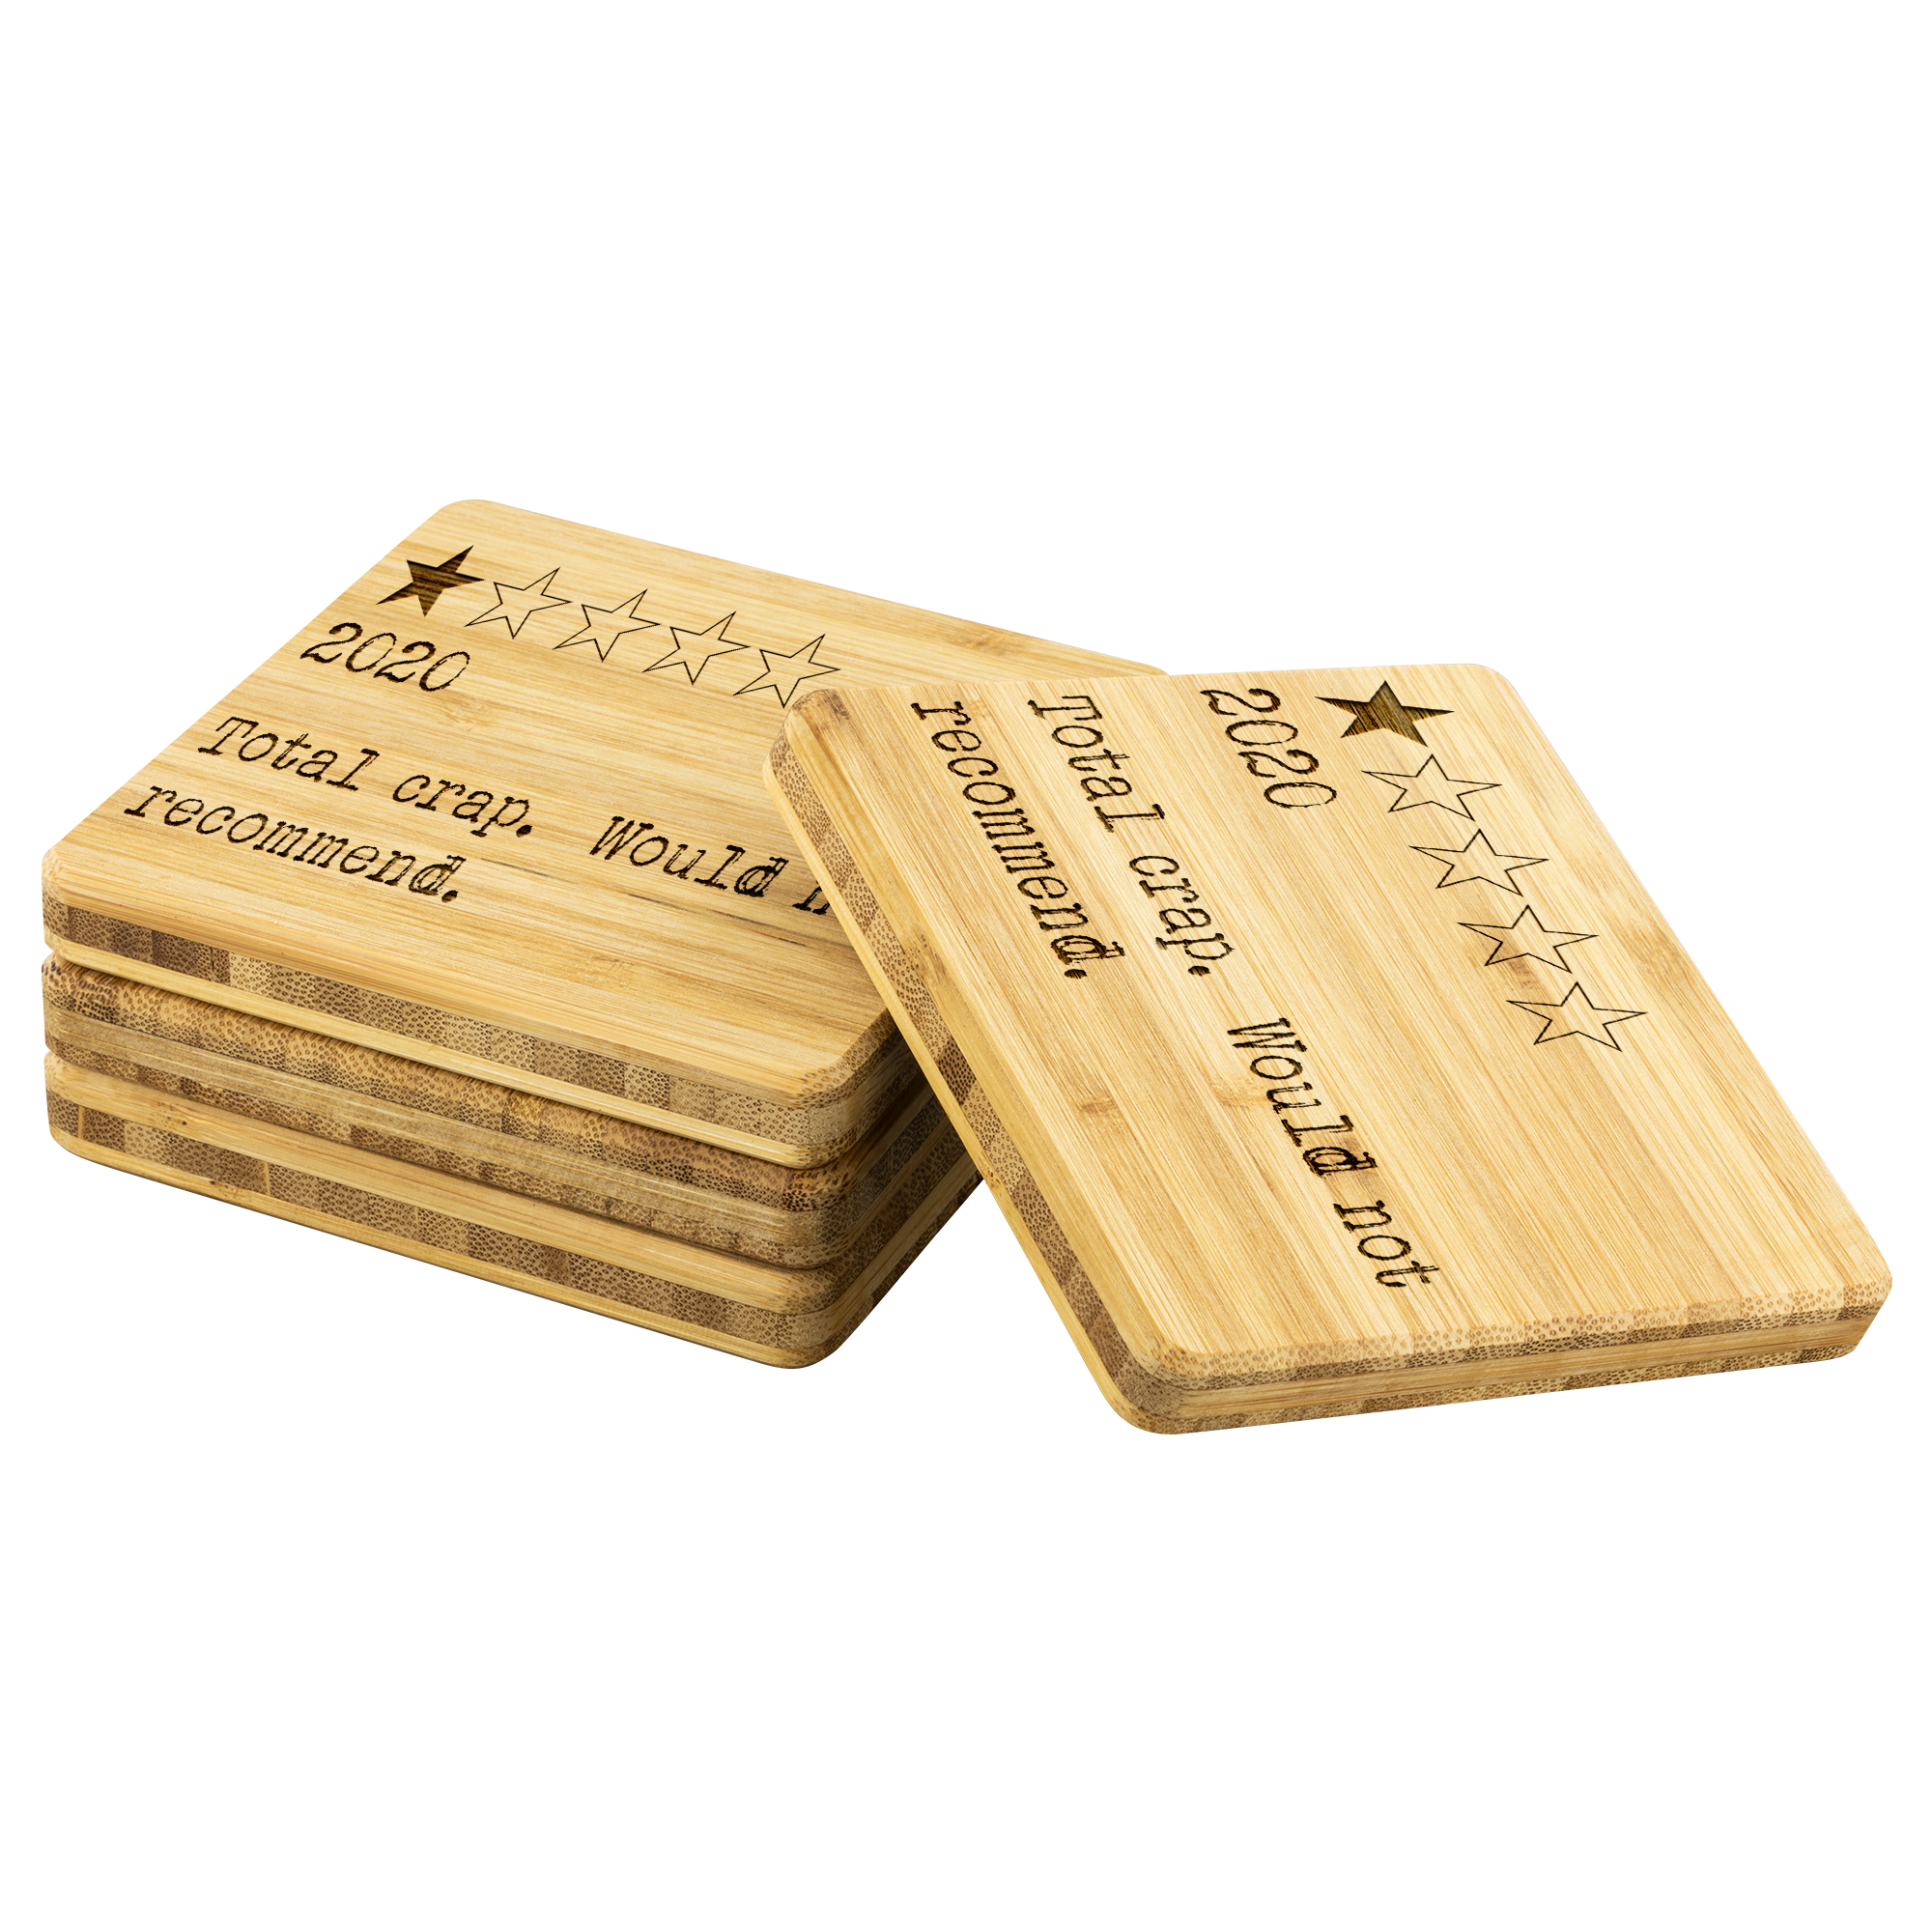 WOULD NOT RECOMMEND • BAMBOO COASTERS